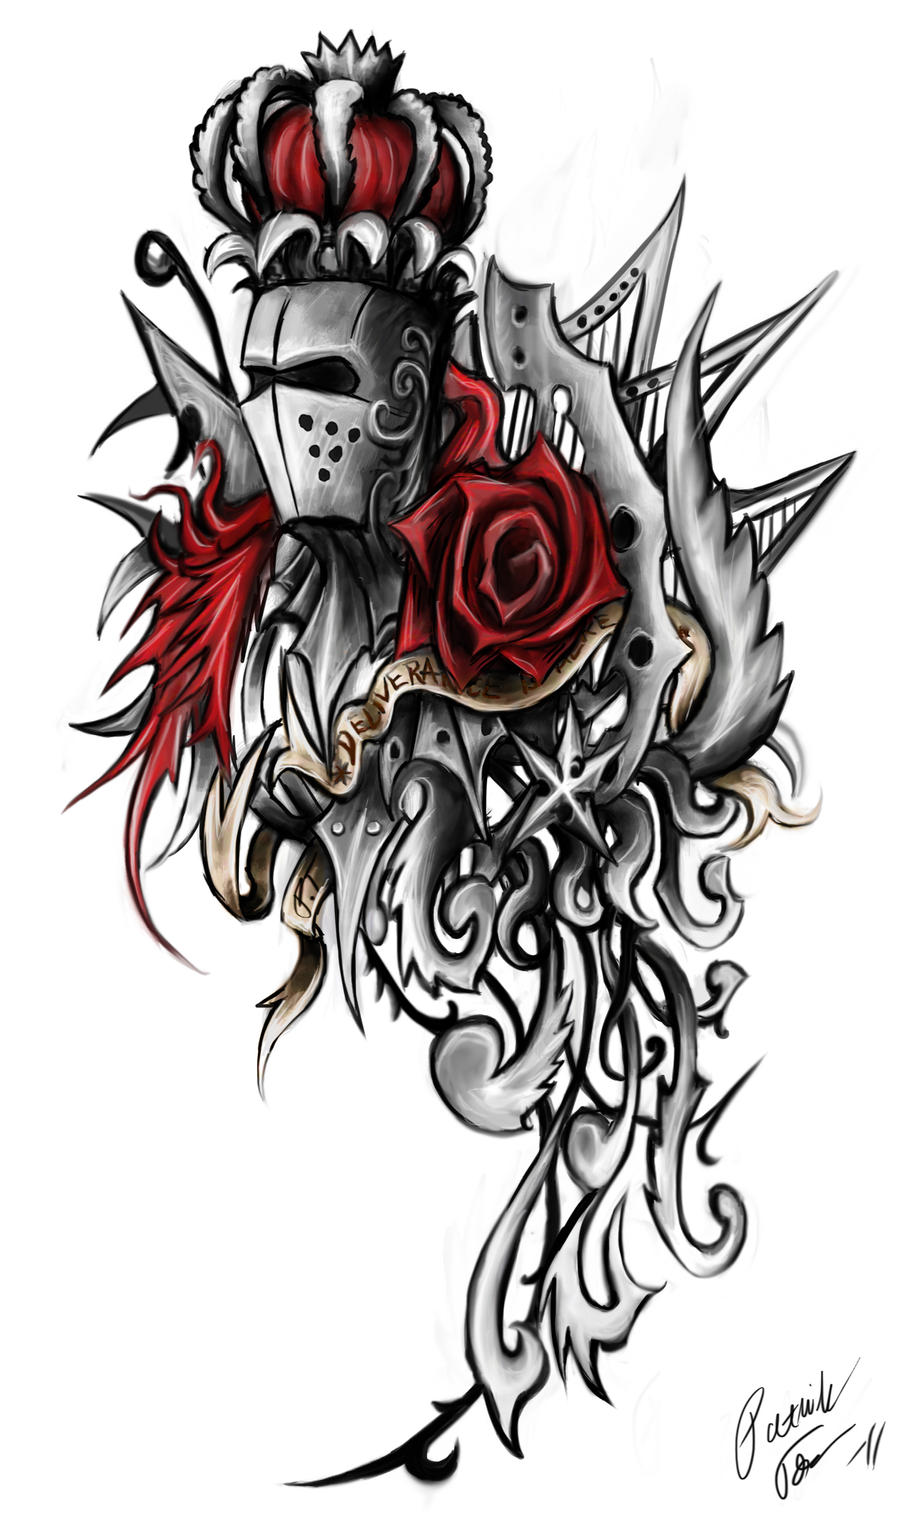 rose knight ornament tattoo by patrike on deviantart. Black Bedroom Furniture Sets. Home Design Ideas